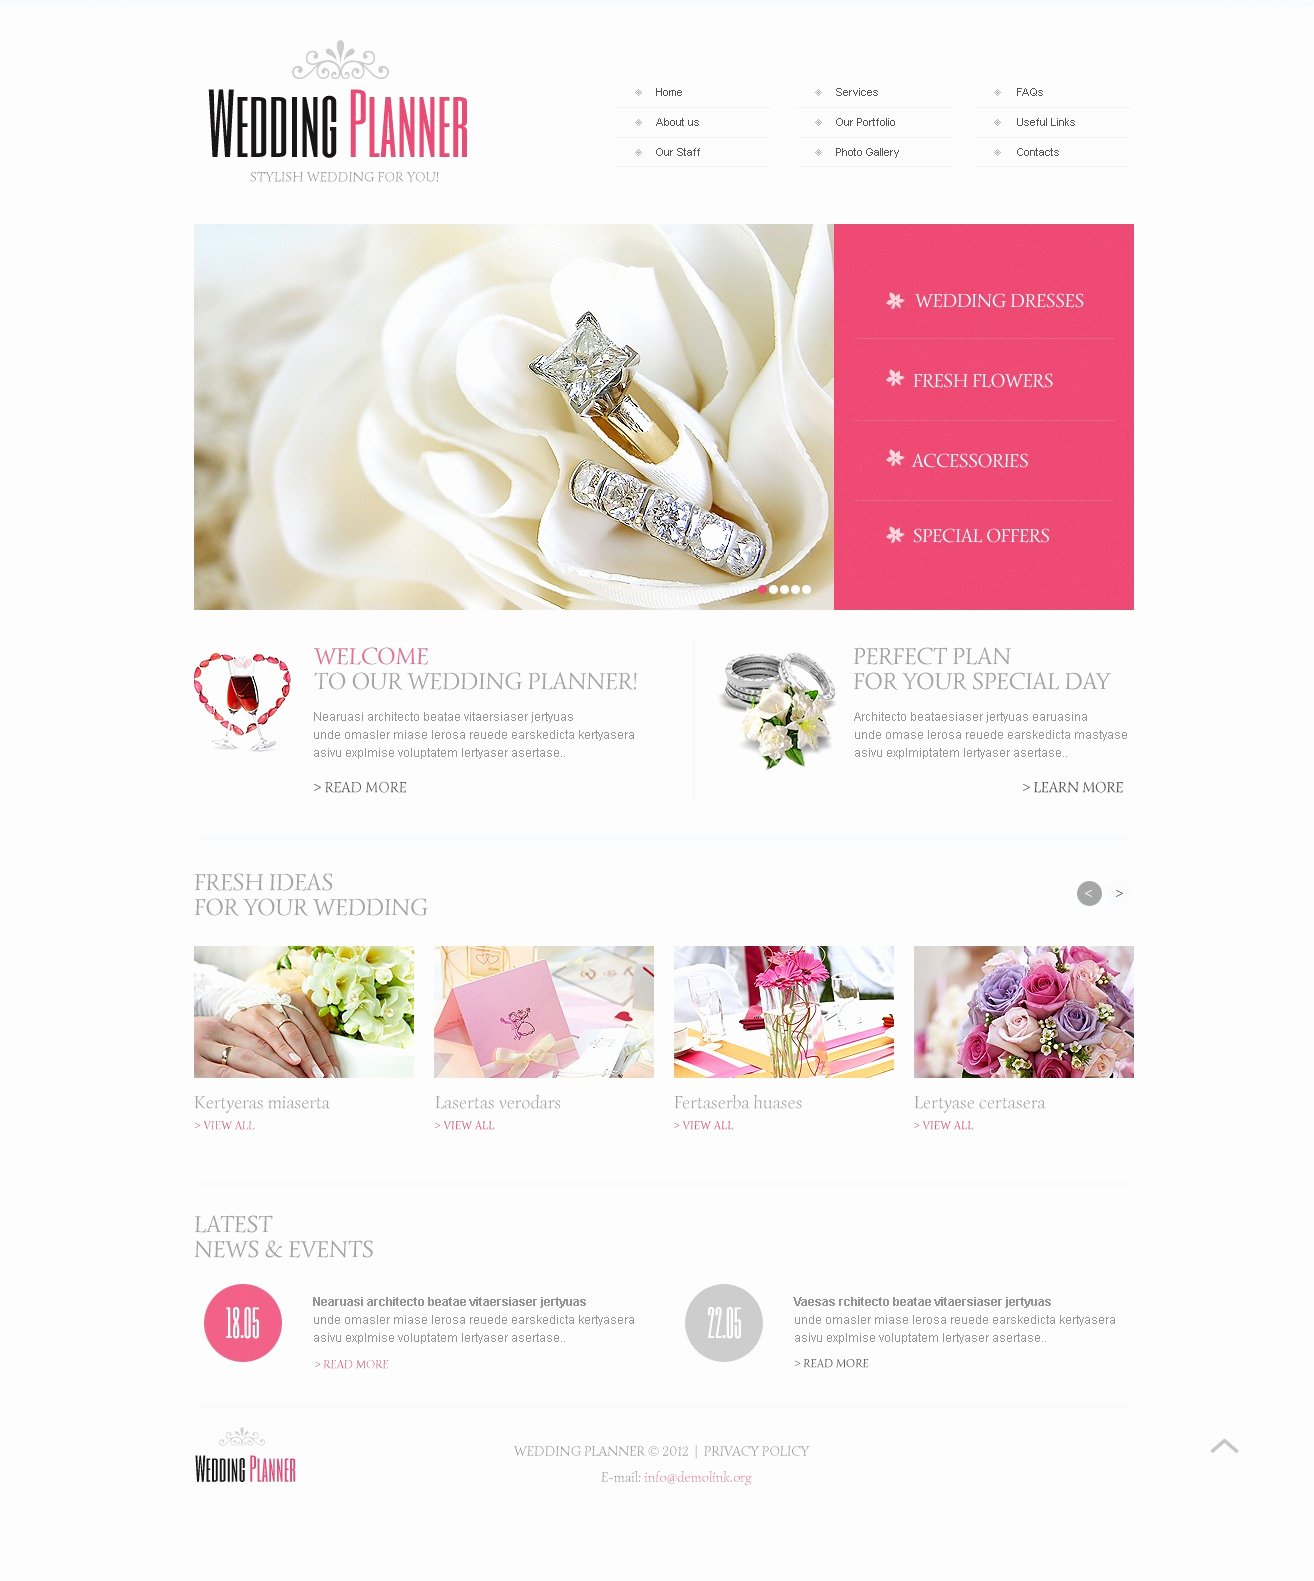 Wedding Planner Website Template Beautiful Wedding Planner Website Template